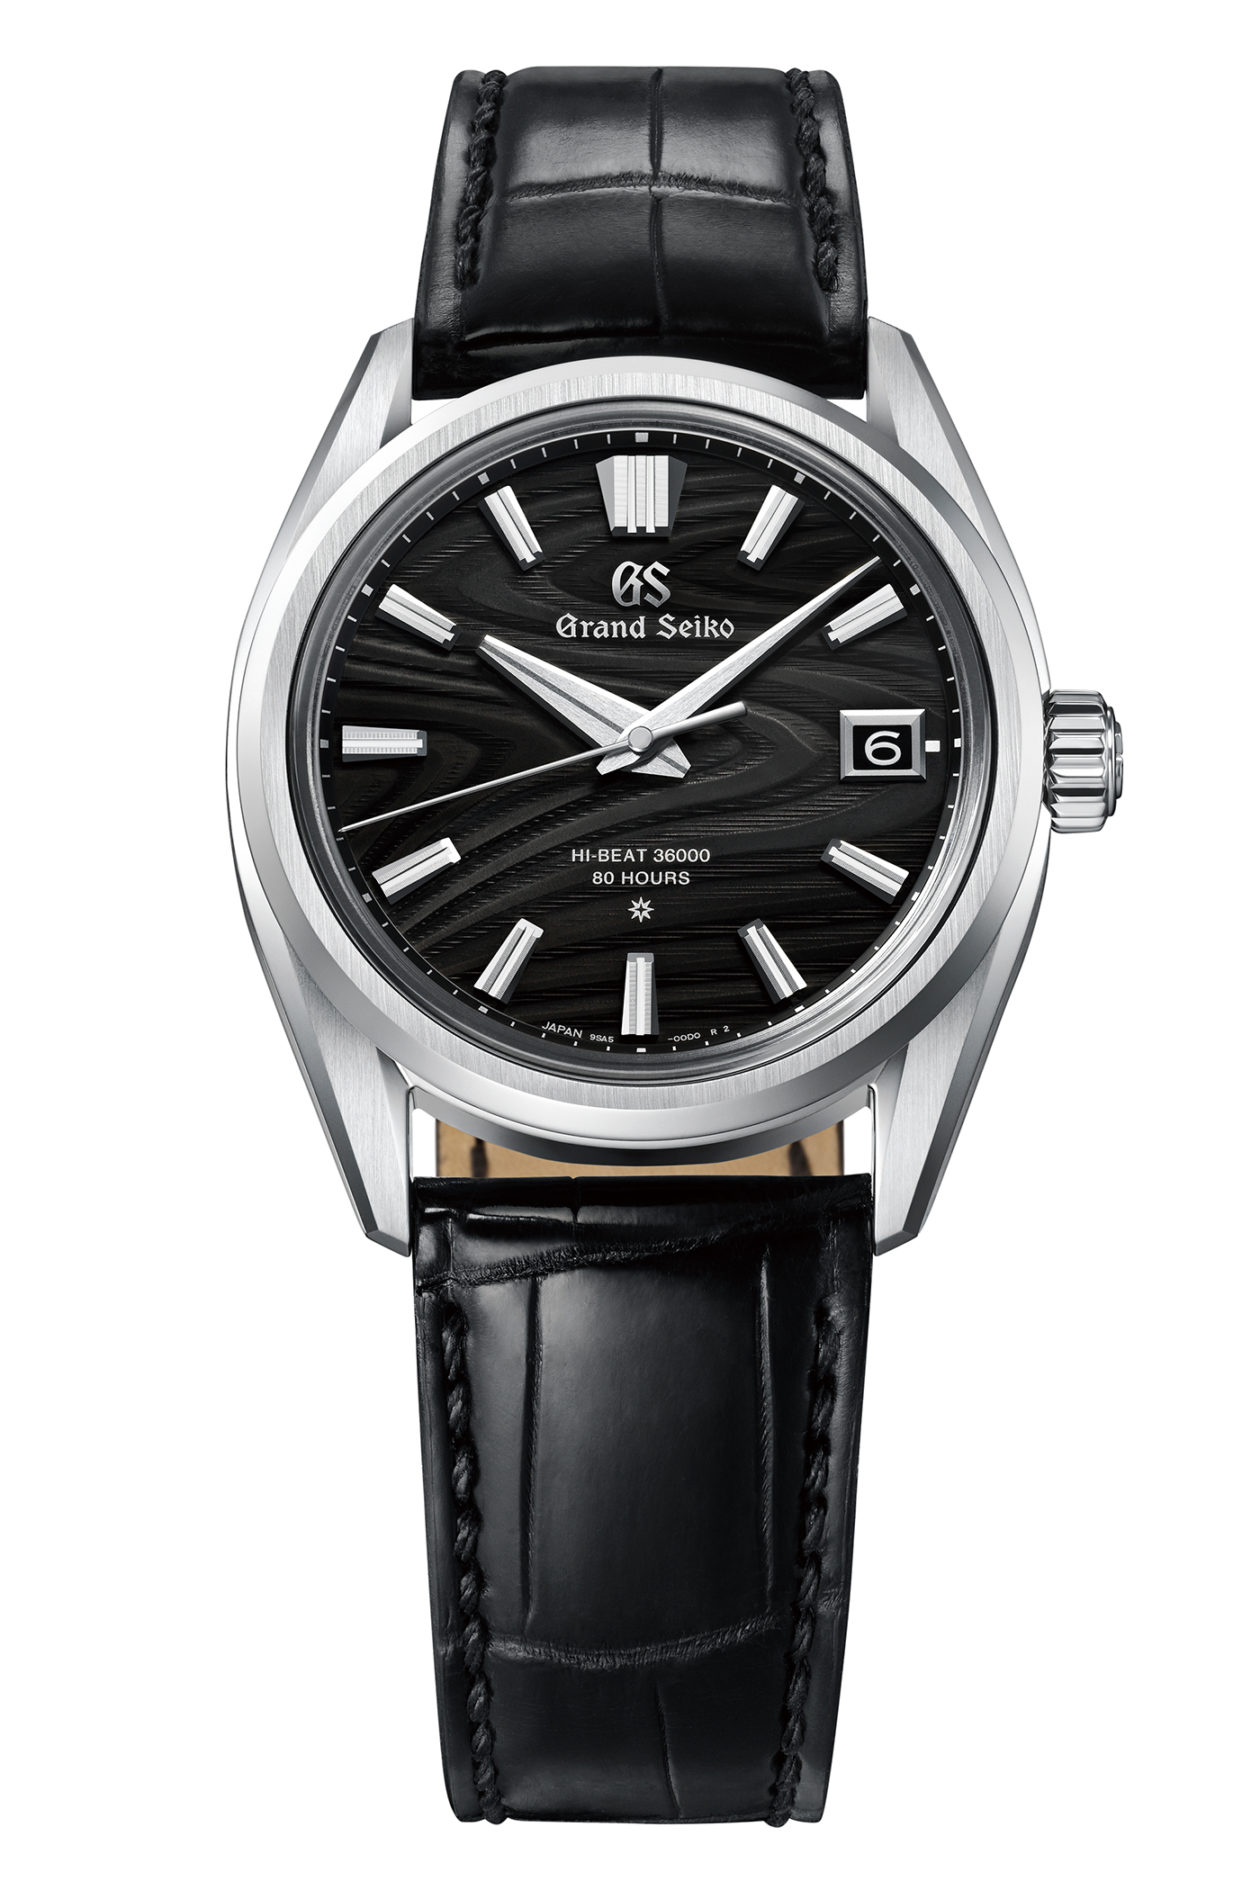 Grand Seiko Heritage Collection 140th Anniversary Limited Edition